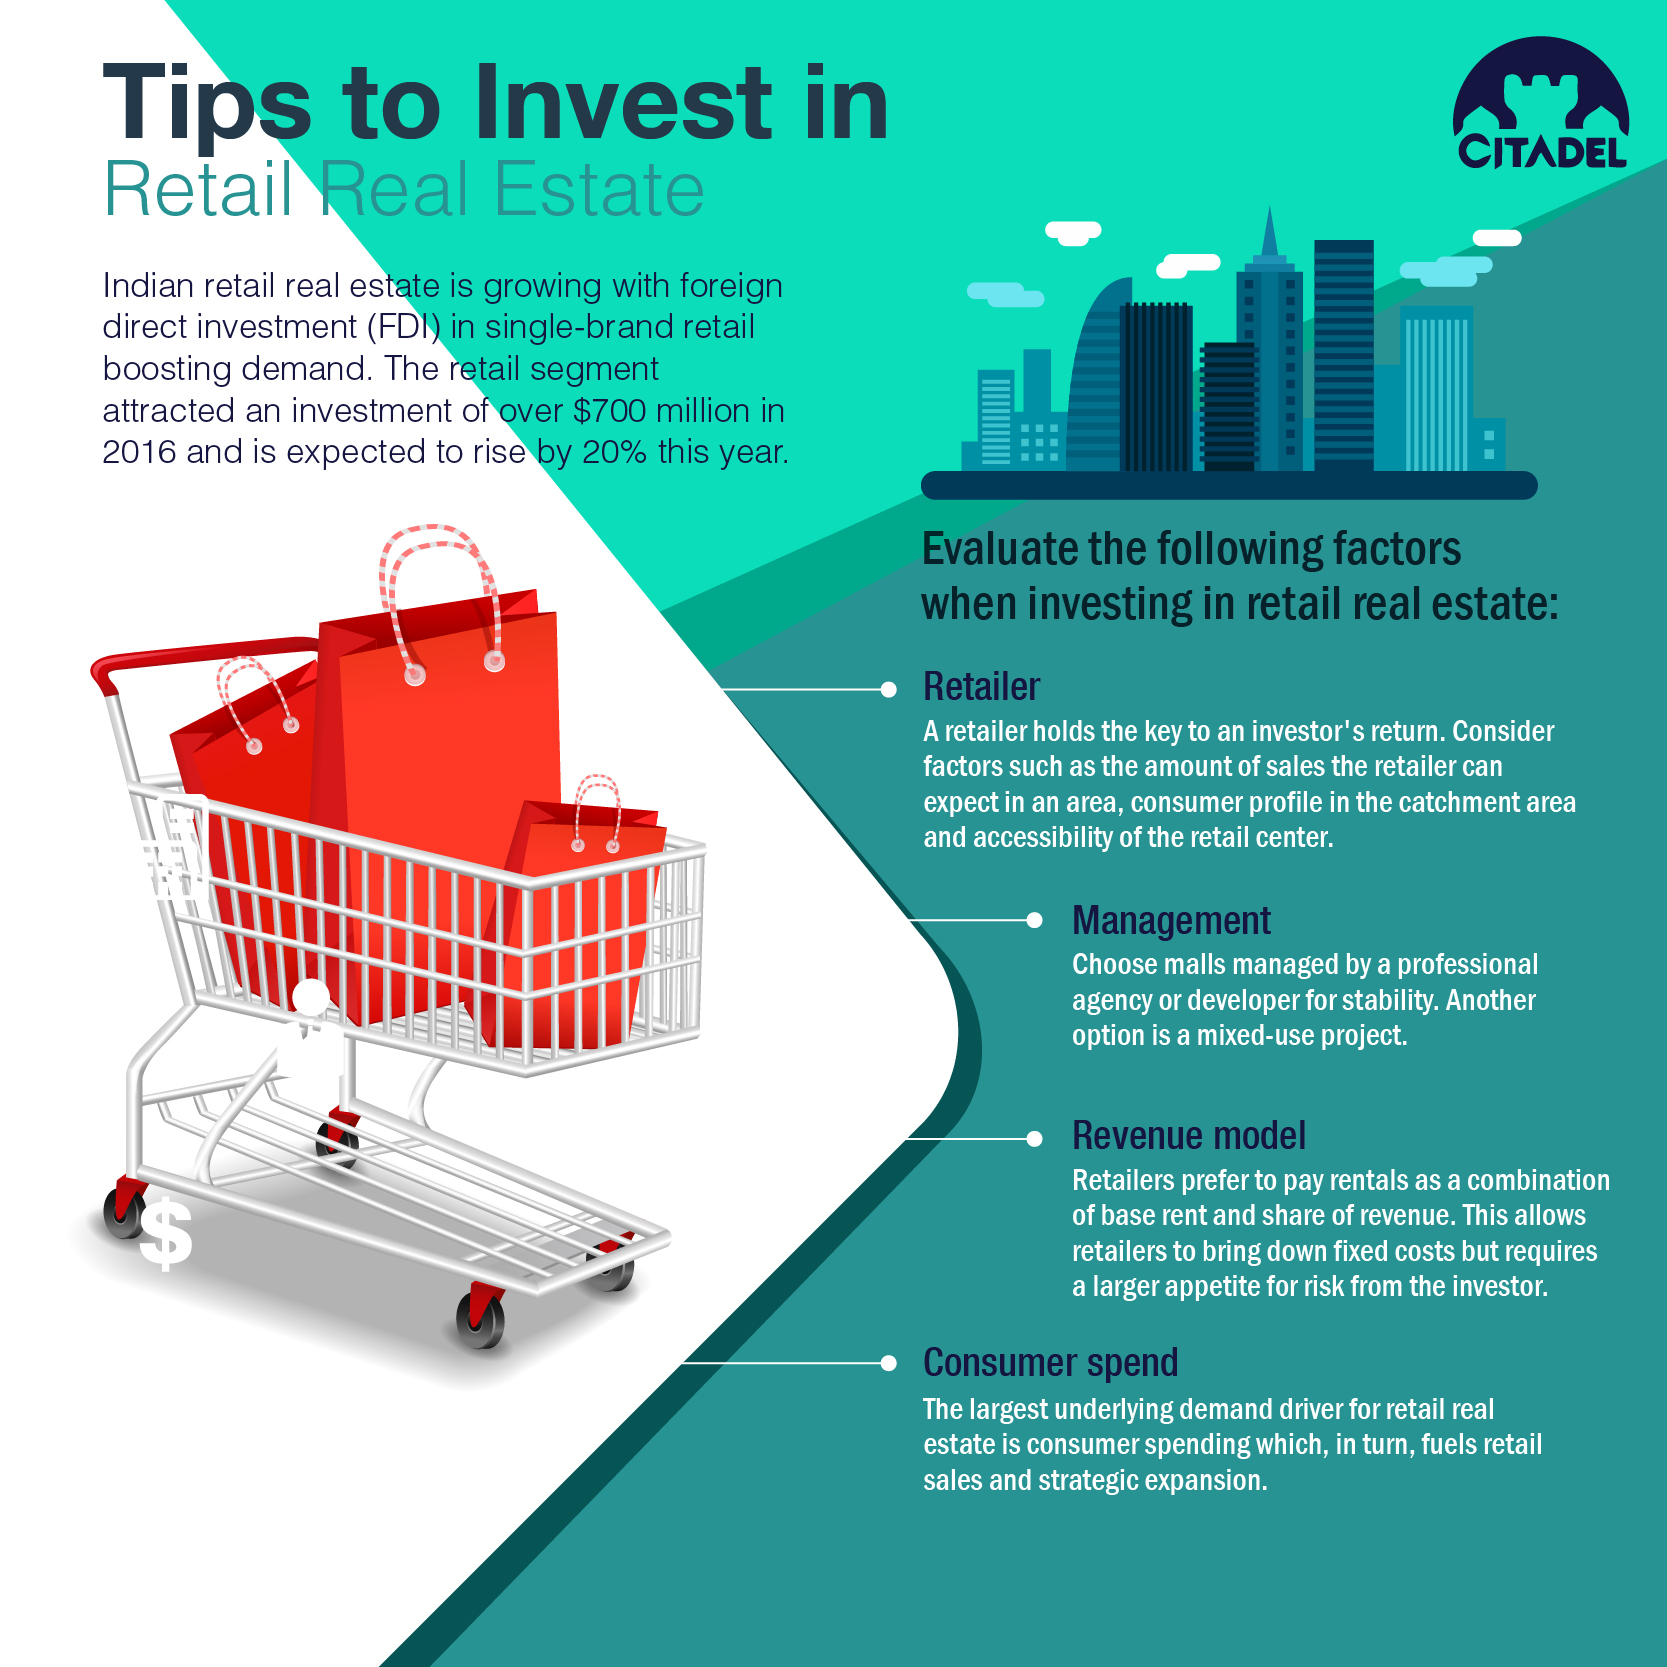 Infogrpahic-How to invest in retail real estate